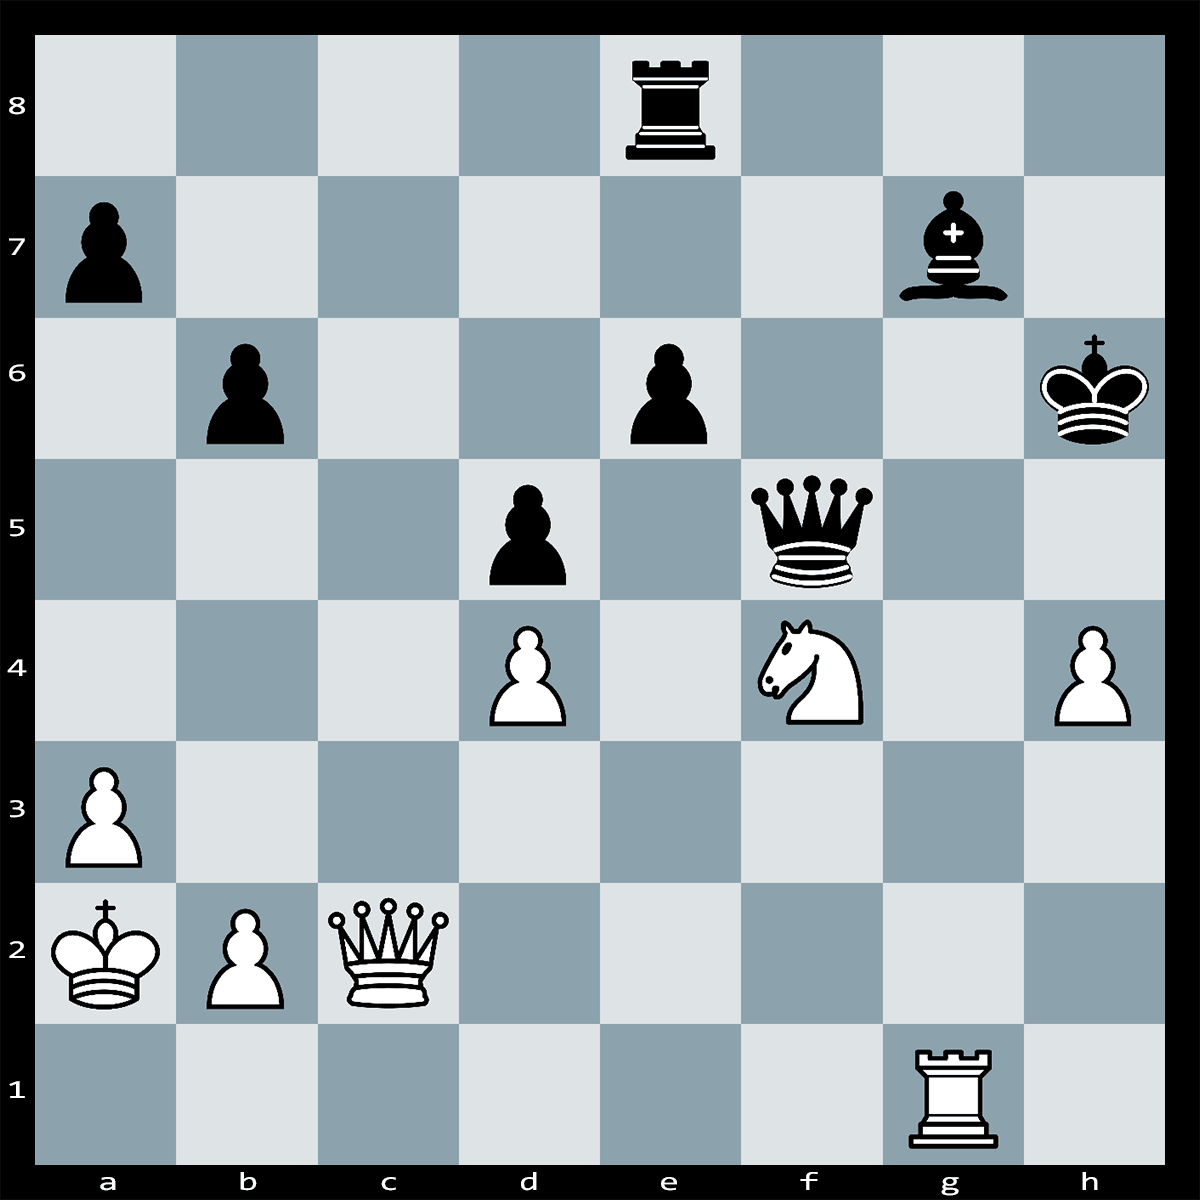 Chess Puzzle #332 | Chess Position from Soviet International Master Ilya Abramovich Kan. White to Play and Win Material, How?